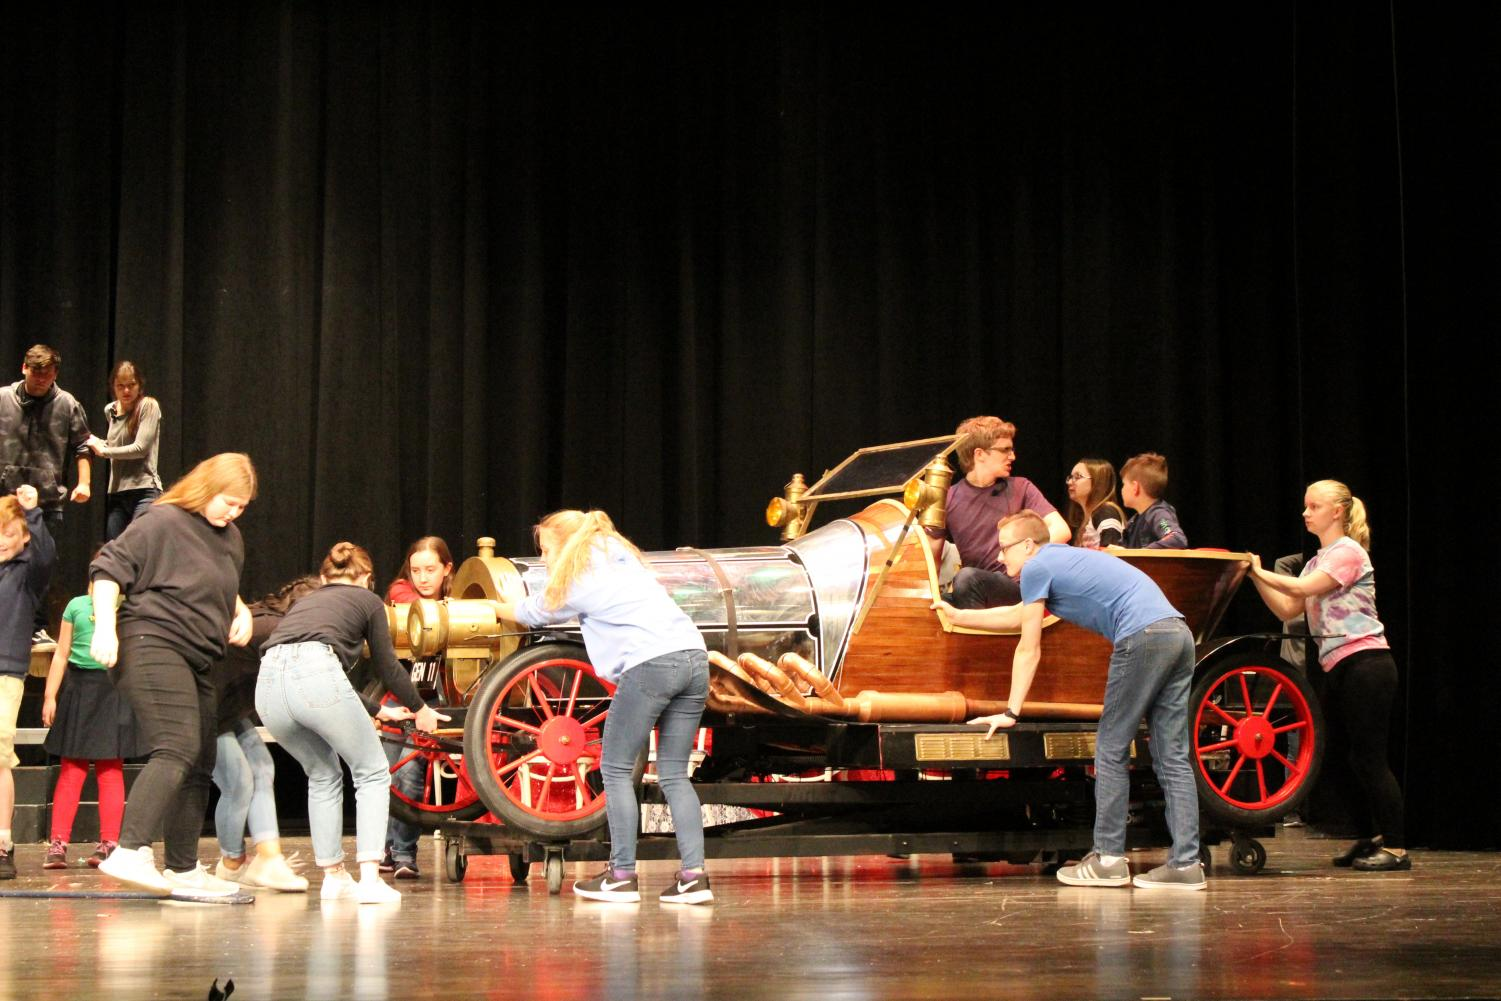 """Grandpa, played by sophomore Dominick Heyob, drives onto stage in """"Chitty Chitty Bang Bang,"""" followed by sophomore Maria Miller and freshman Gabe Means, who play old and crotchety inventors (Photo by Alexis Lee)."""